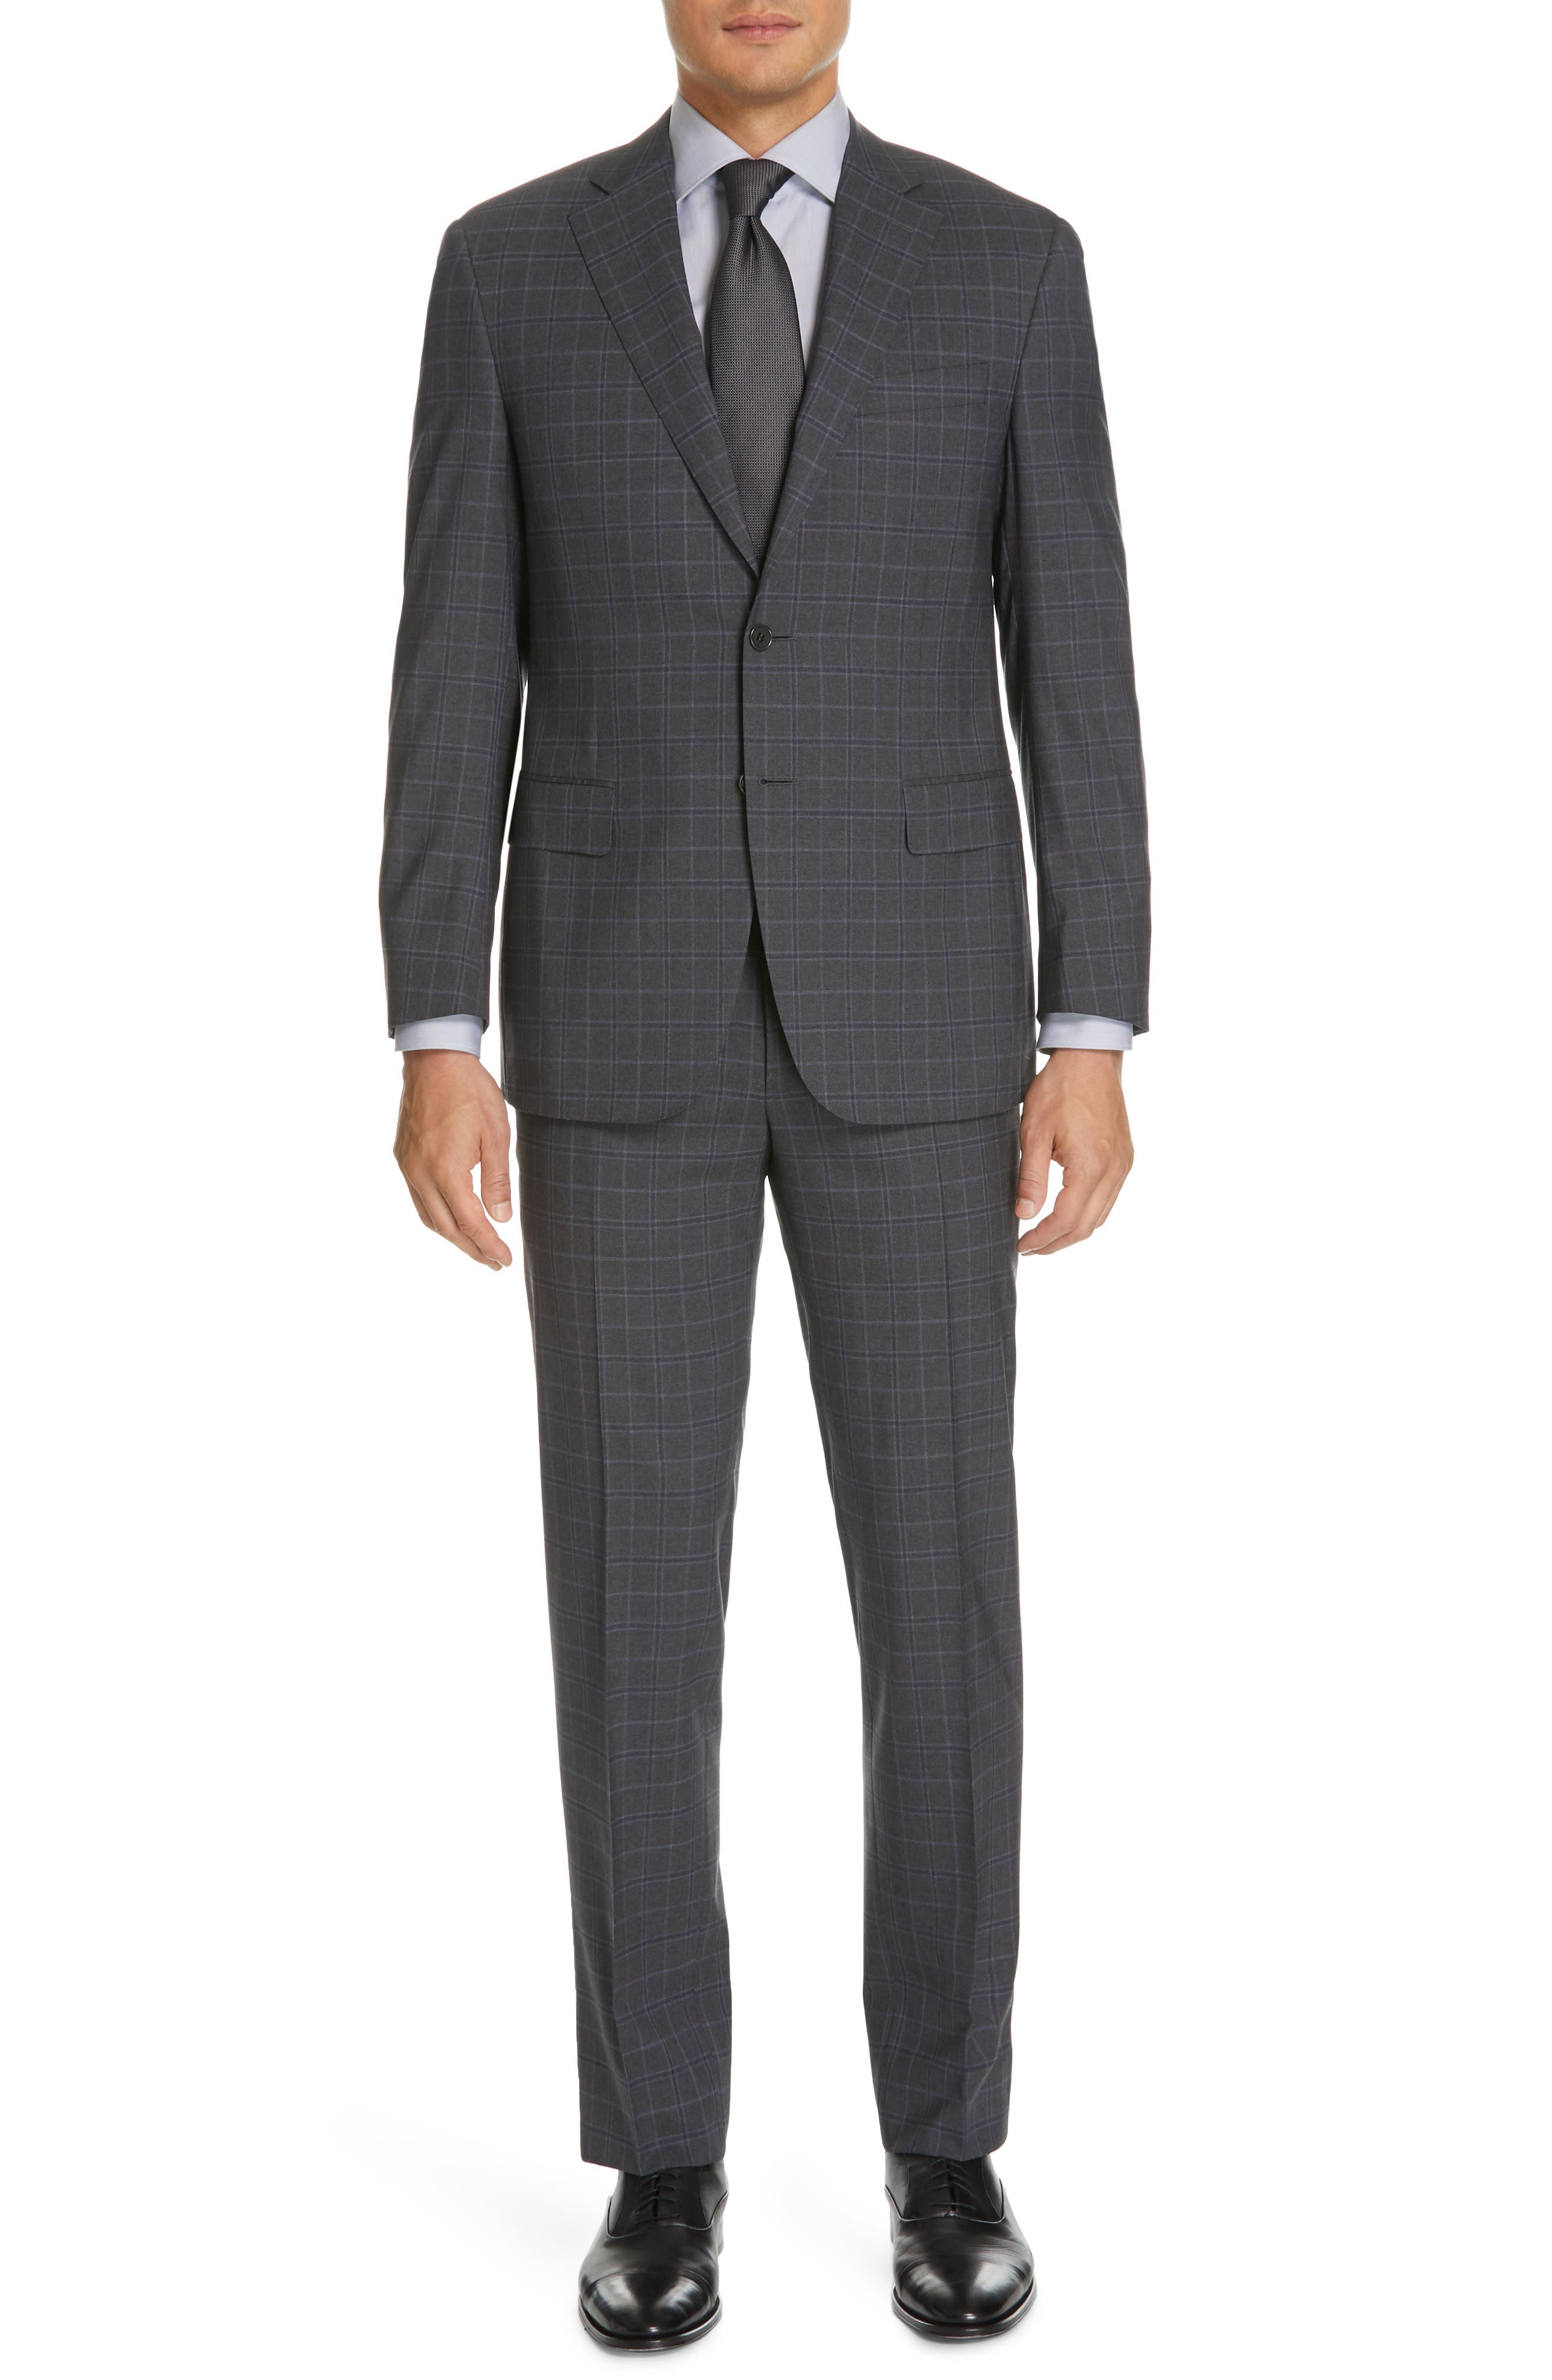 CANALI, Sienna Classic Fit Plaid Wool Suit, Main thumbnail 1, color, CHARCOAL